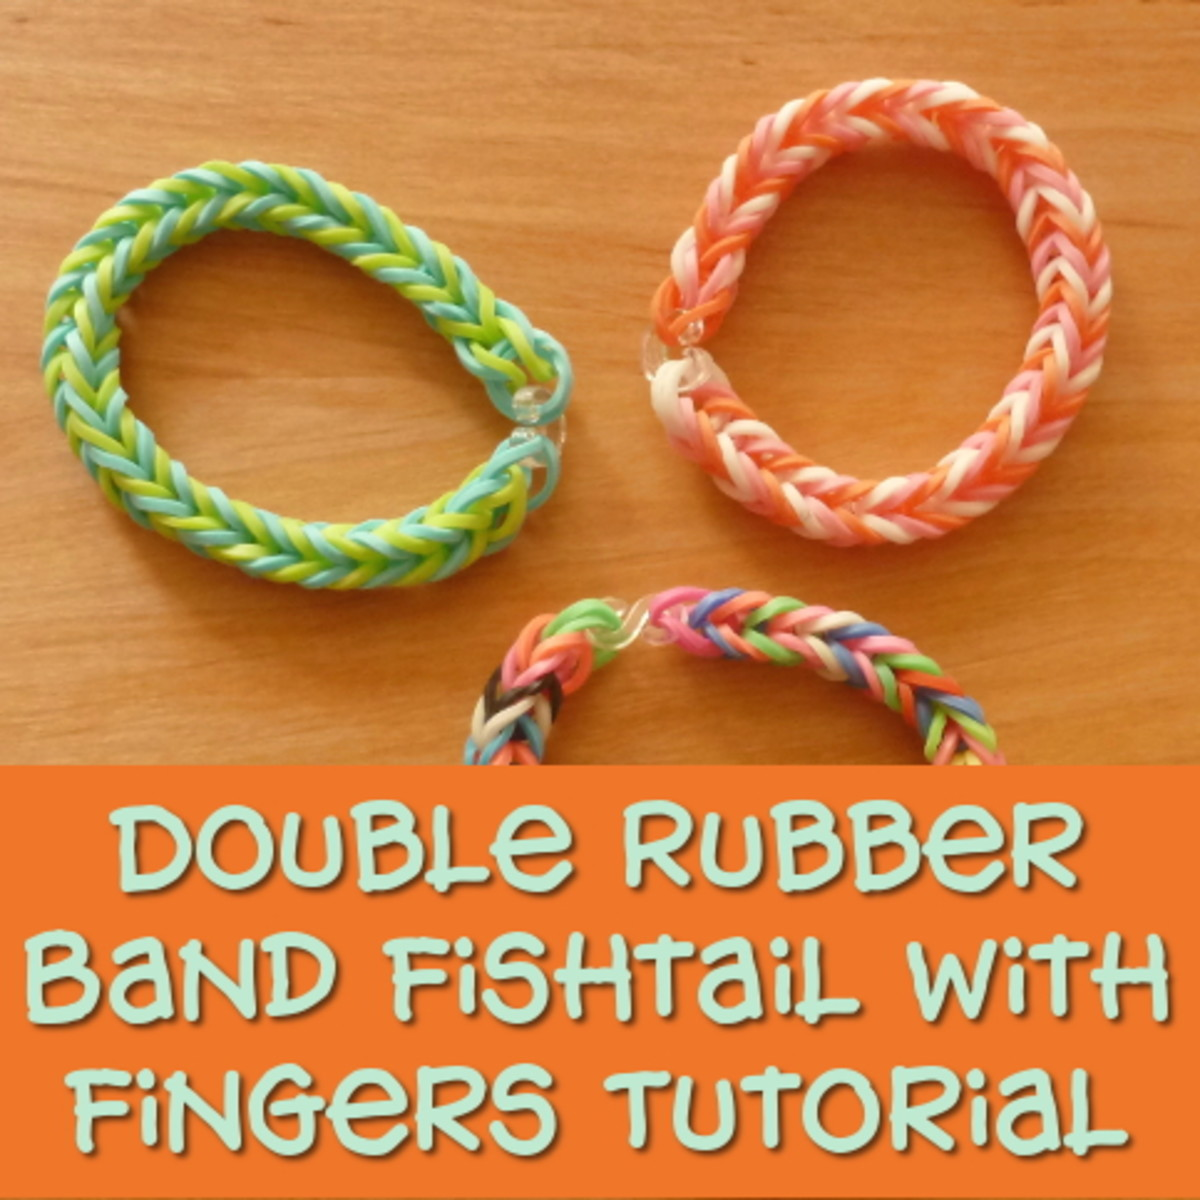 The double rubber band fishtail no loom pattern using your fingers tutorial